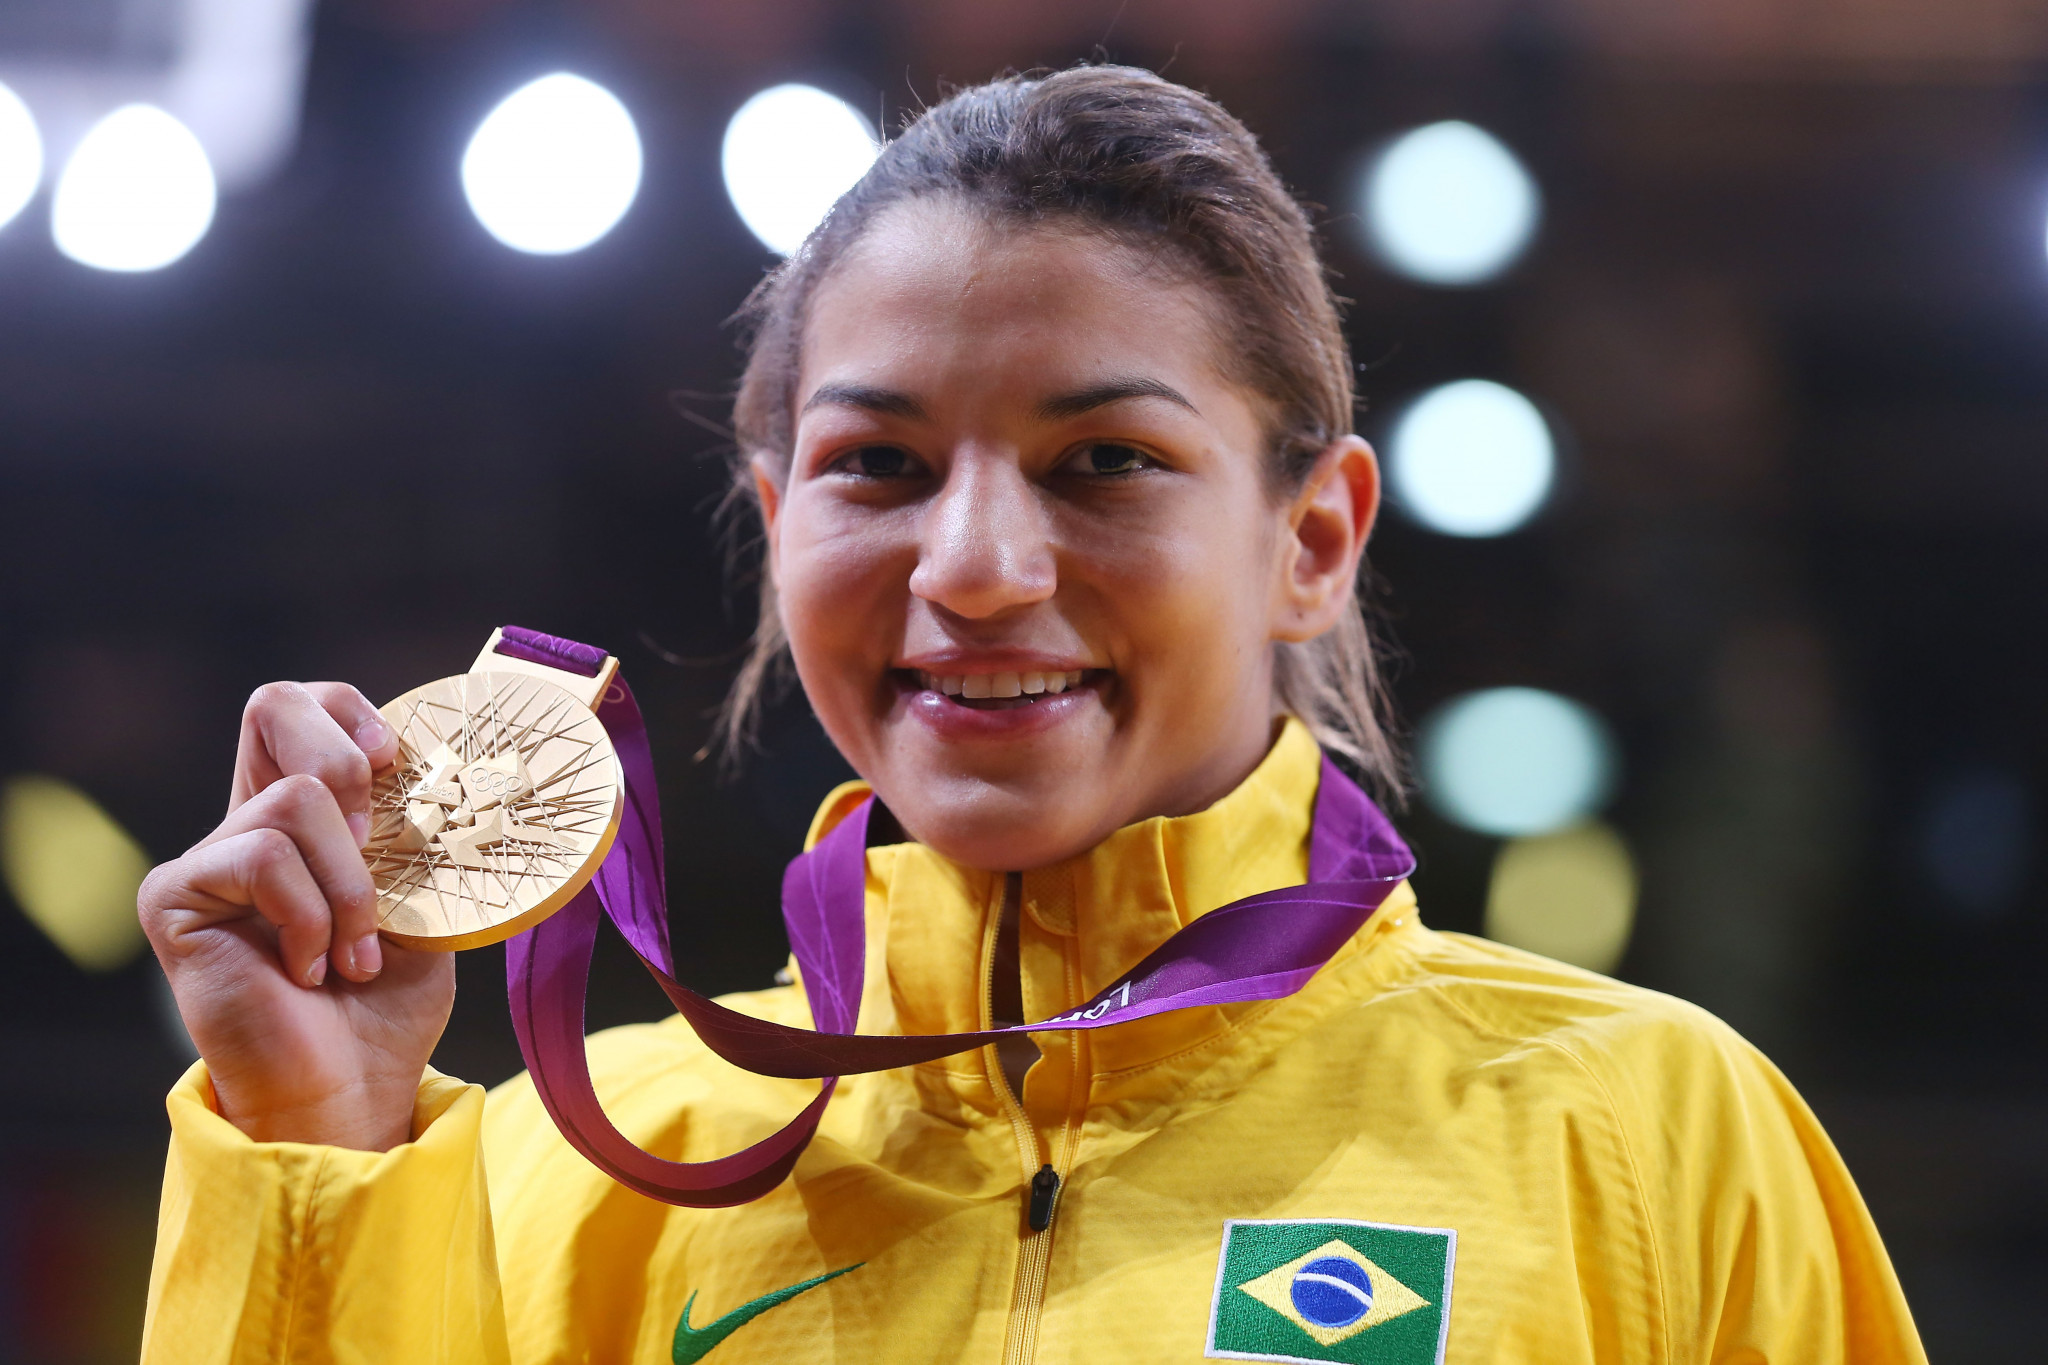 Sarah Menezes won Olympic judo gold at London 2012 having previously taken part in the Youth School Games ©Getty Images